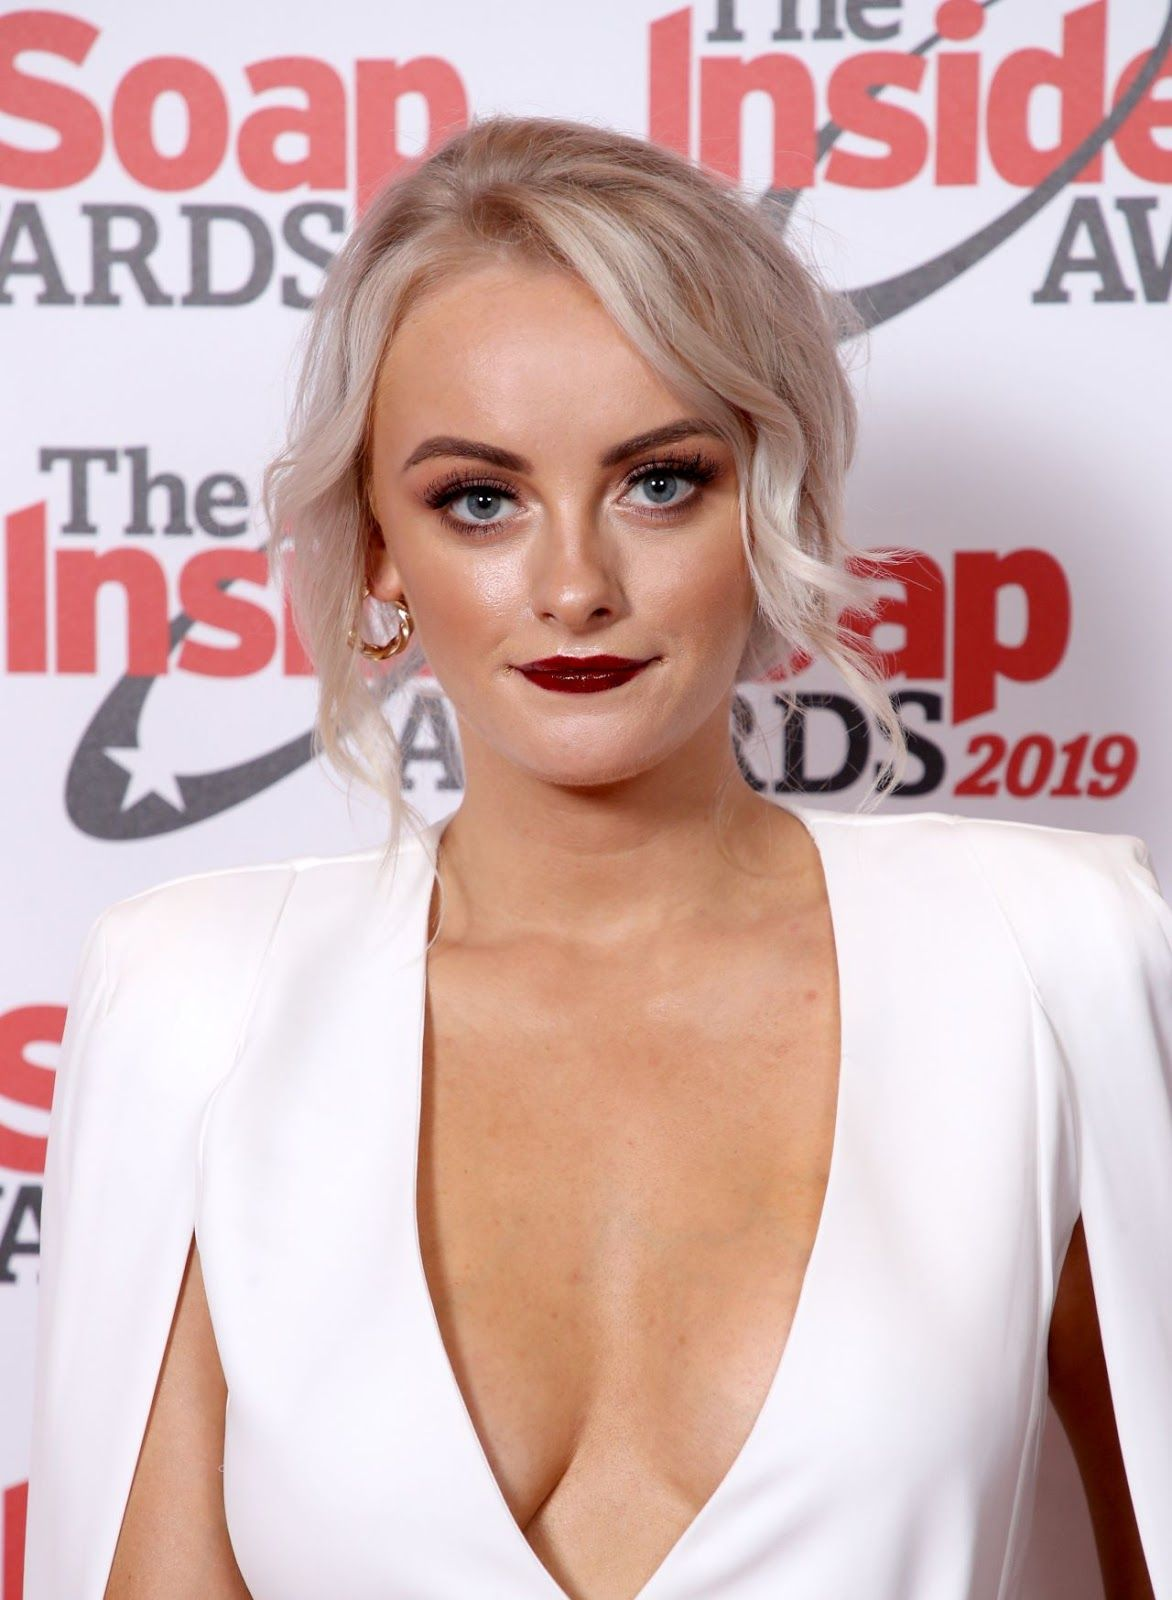 Katie McGlynn Inside Soap Awards 2019 in London Soap